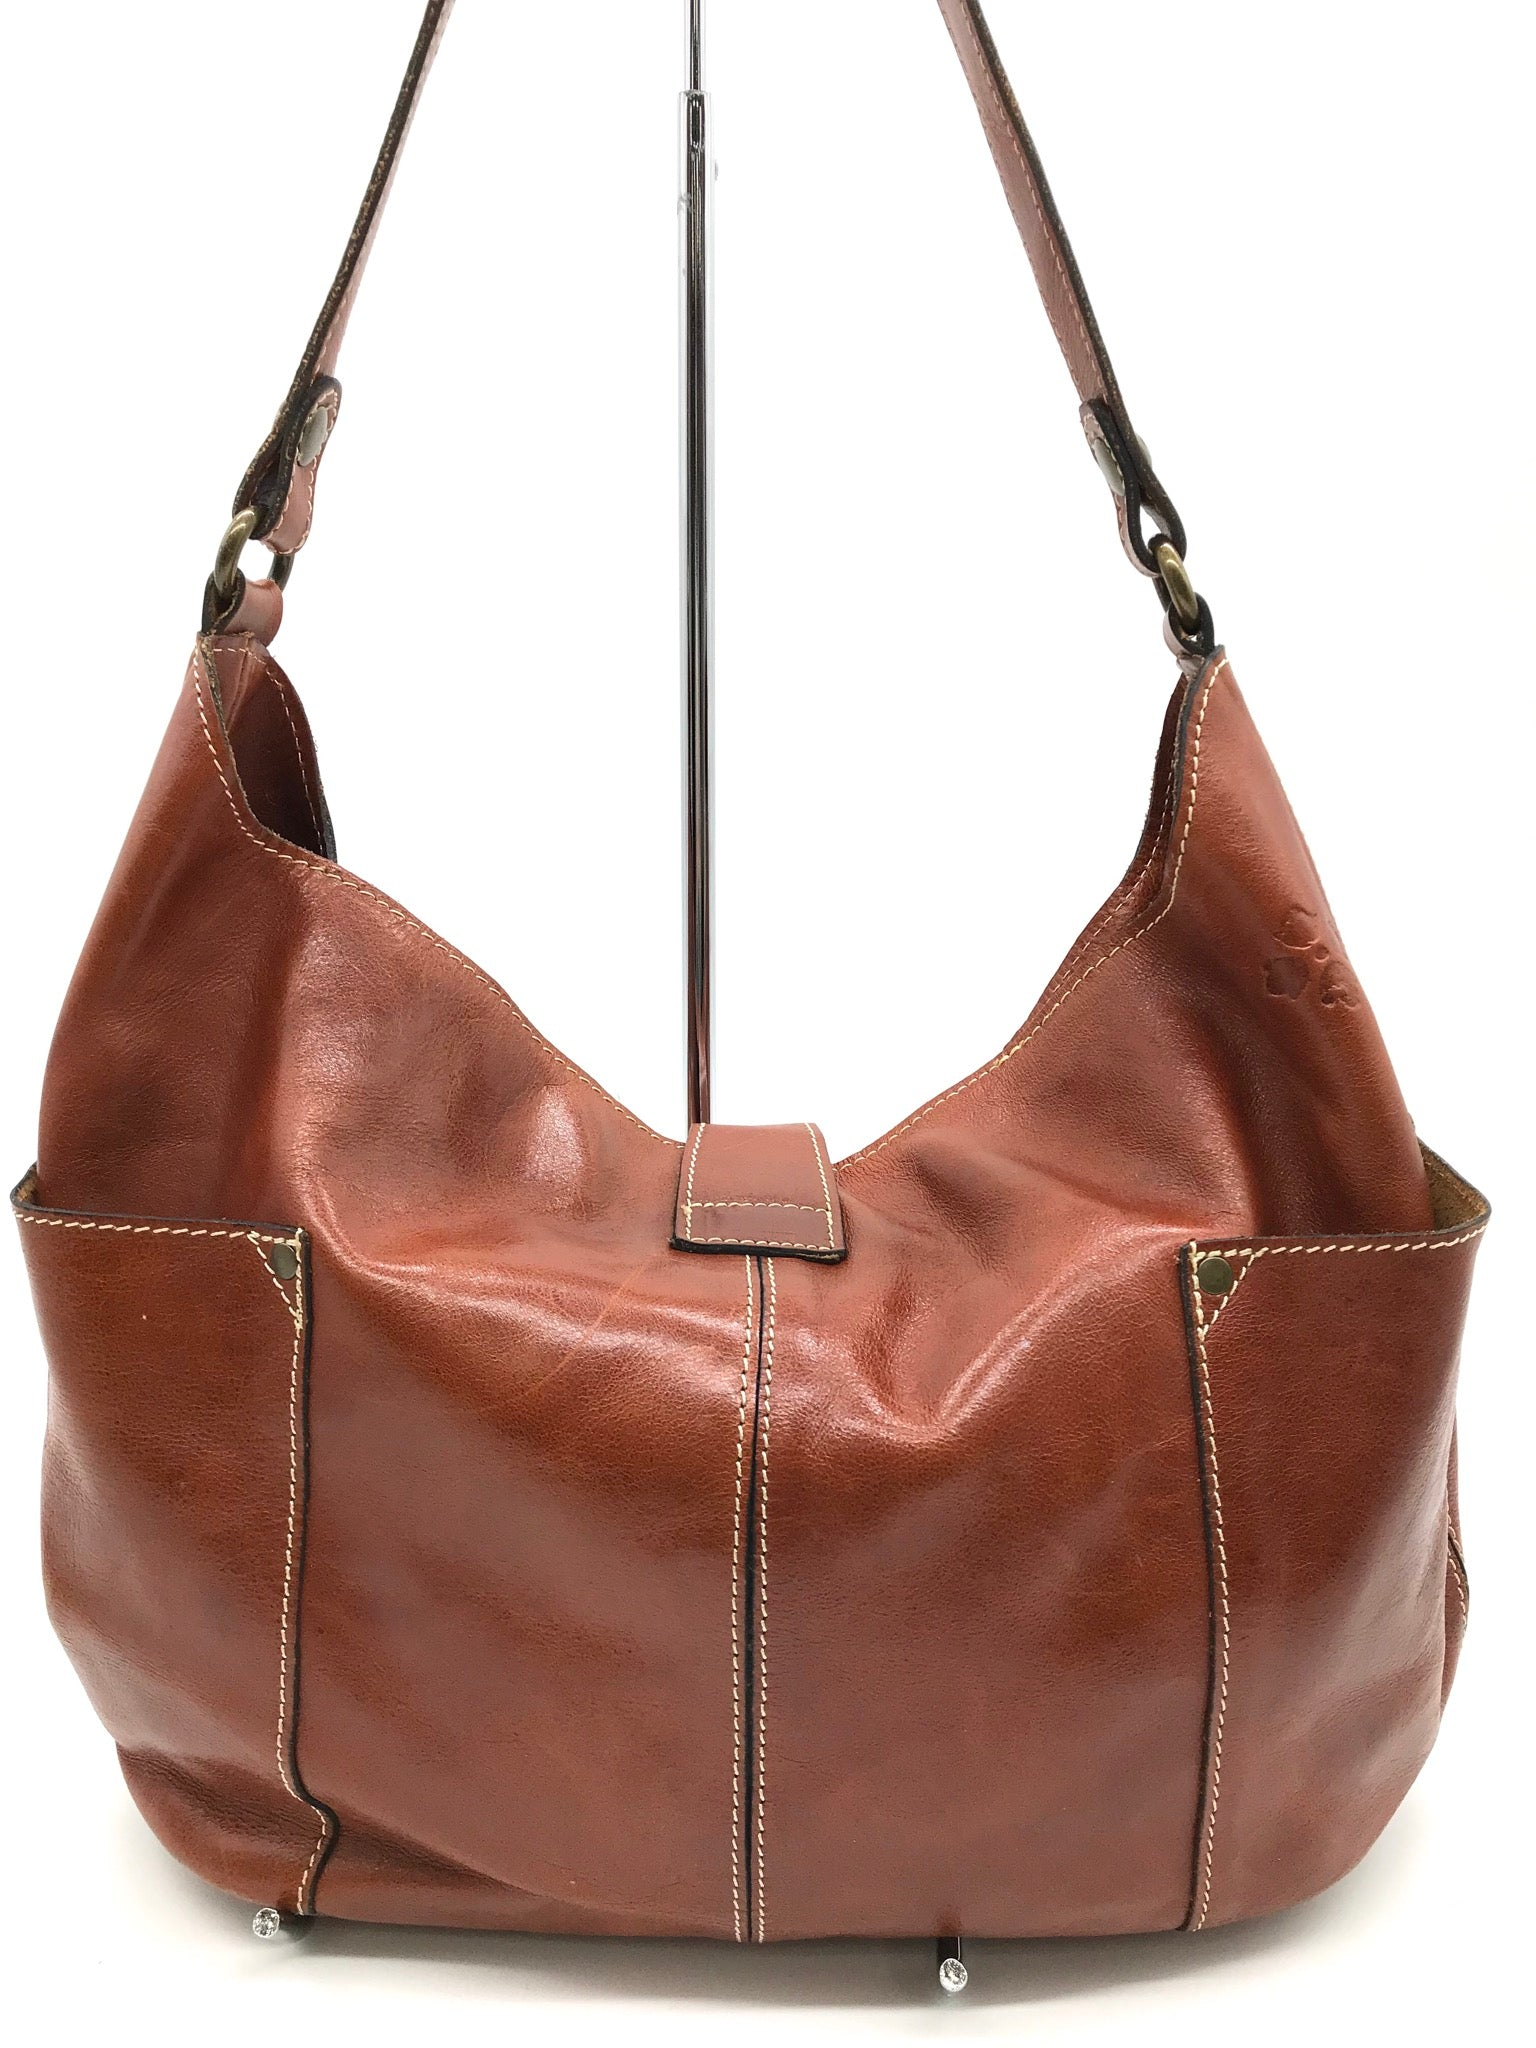 Photo #1 - BRAND: PATRICIA NASH <BR>STYLE: HANDBAG <BR>COLOR: BROWN <BR>SIZE: MEDIUM <BR>SKU: 262-26275-64345<BR>GENTLE WEAR SHOWS AS BOTTOM CORNERS - AS IS